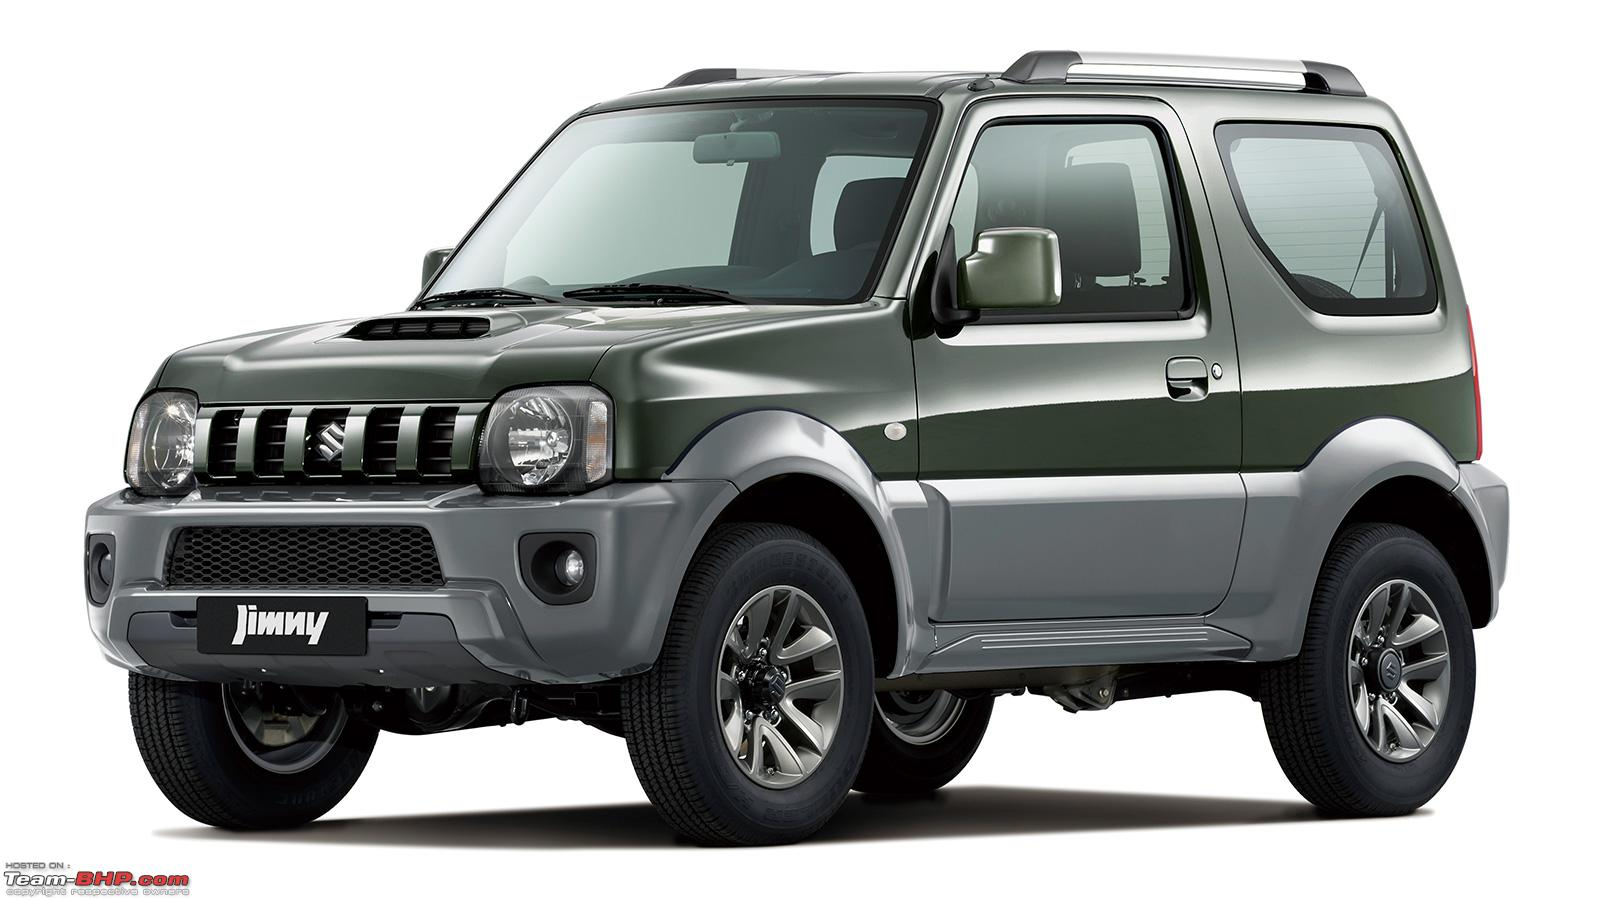 New suzuki jimny in 2018 galleryex10 jpg